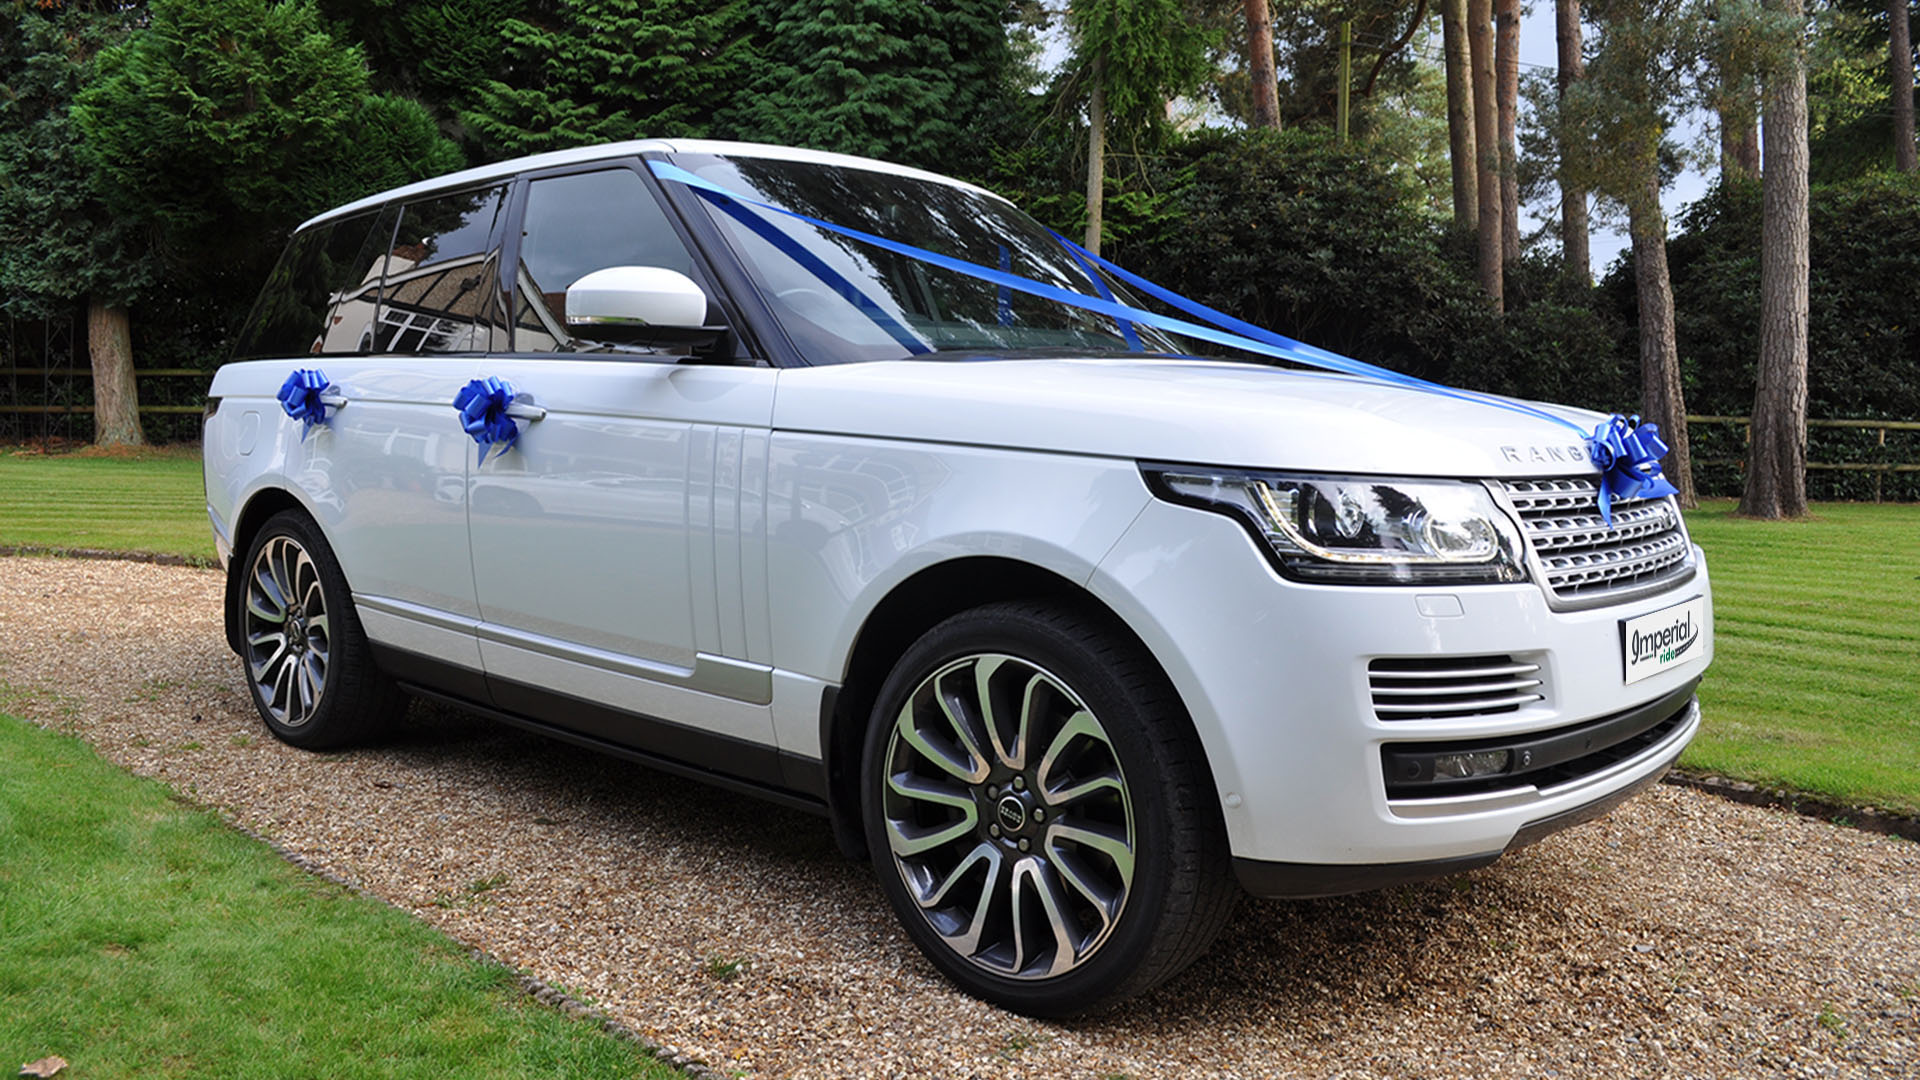 range-rover-wedding-hire-in-croydon